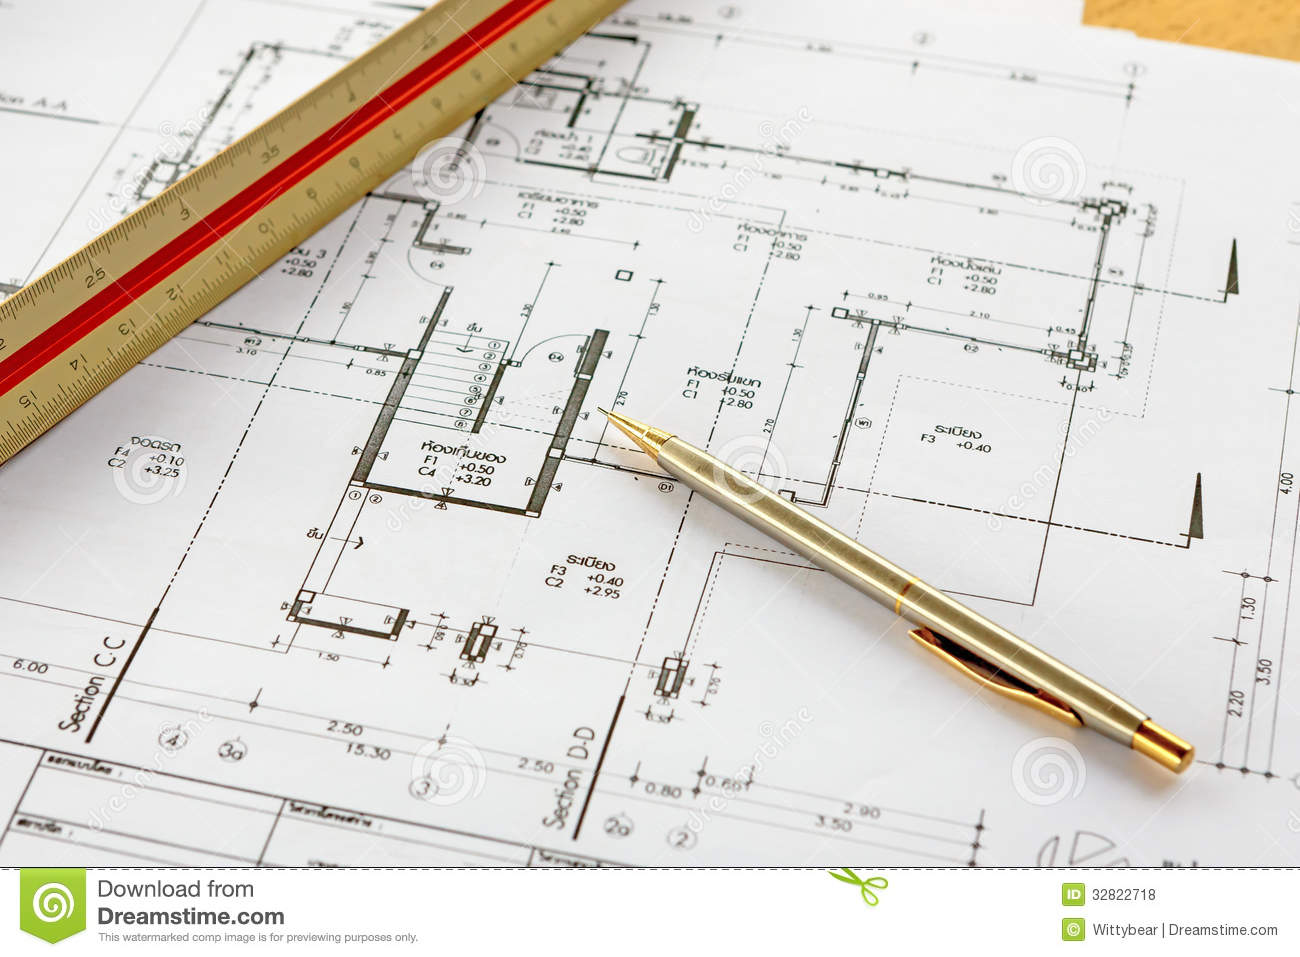 Architecture drawings with pencil and ruler royalty free for Online architecture drawing